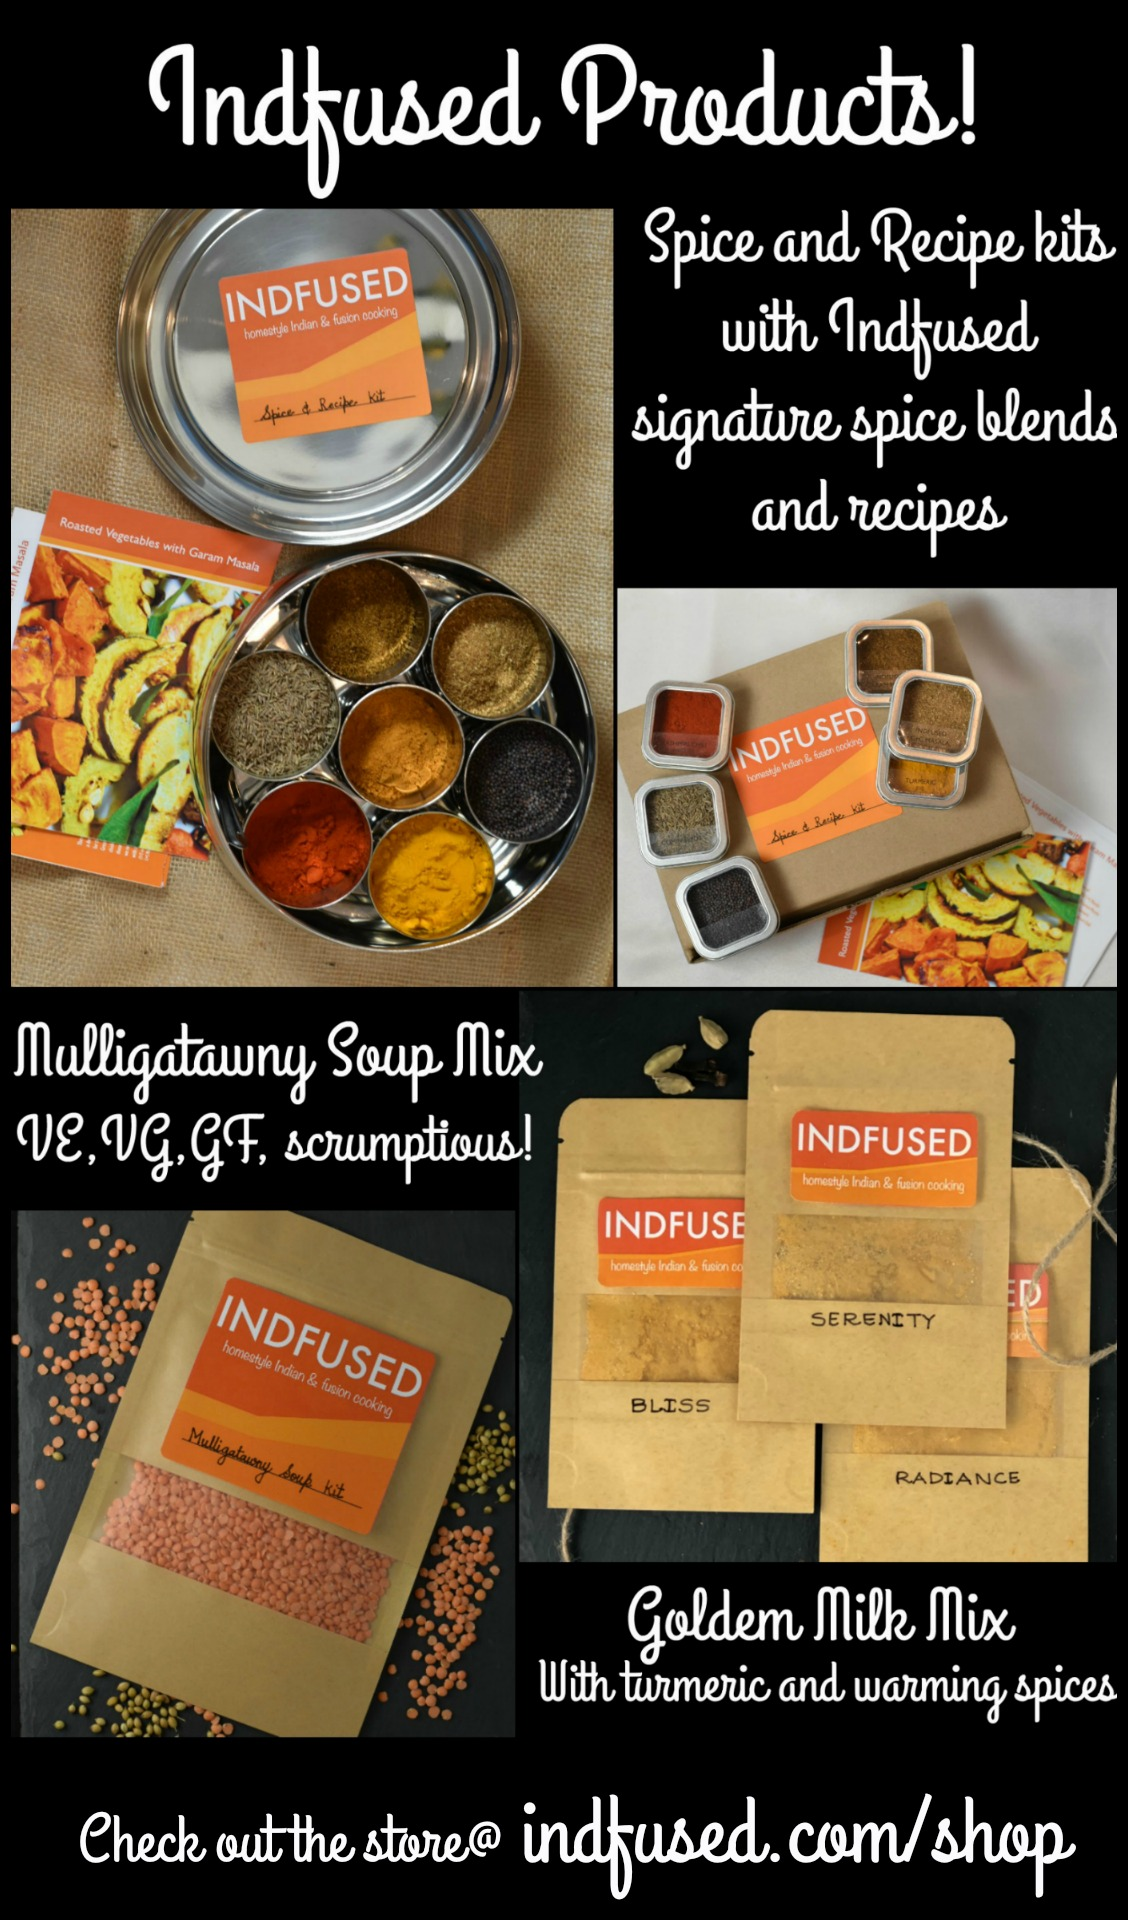 Indfused products in the online store for indian and fusion cooking.